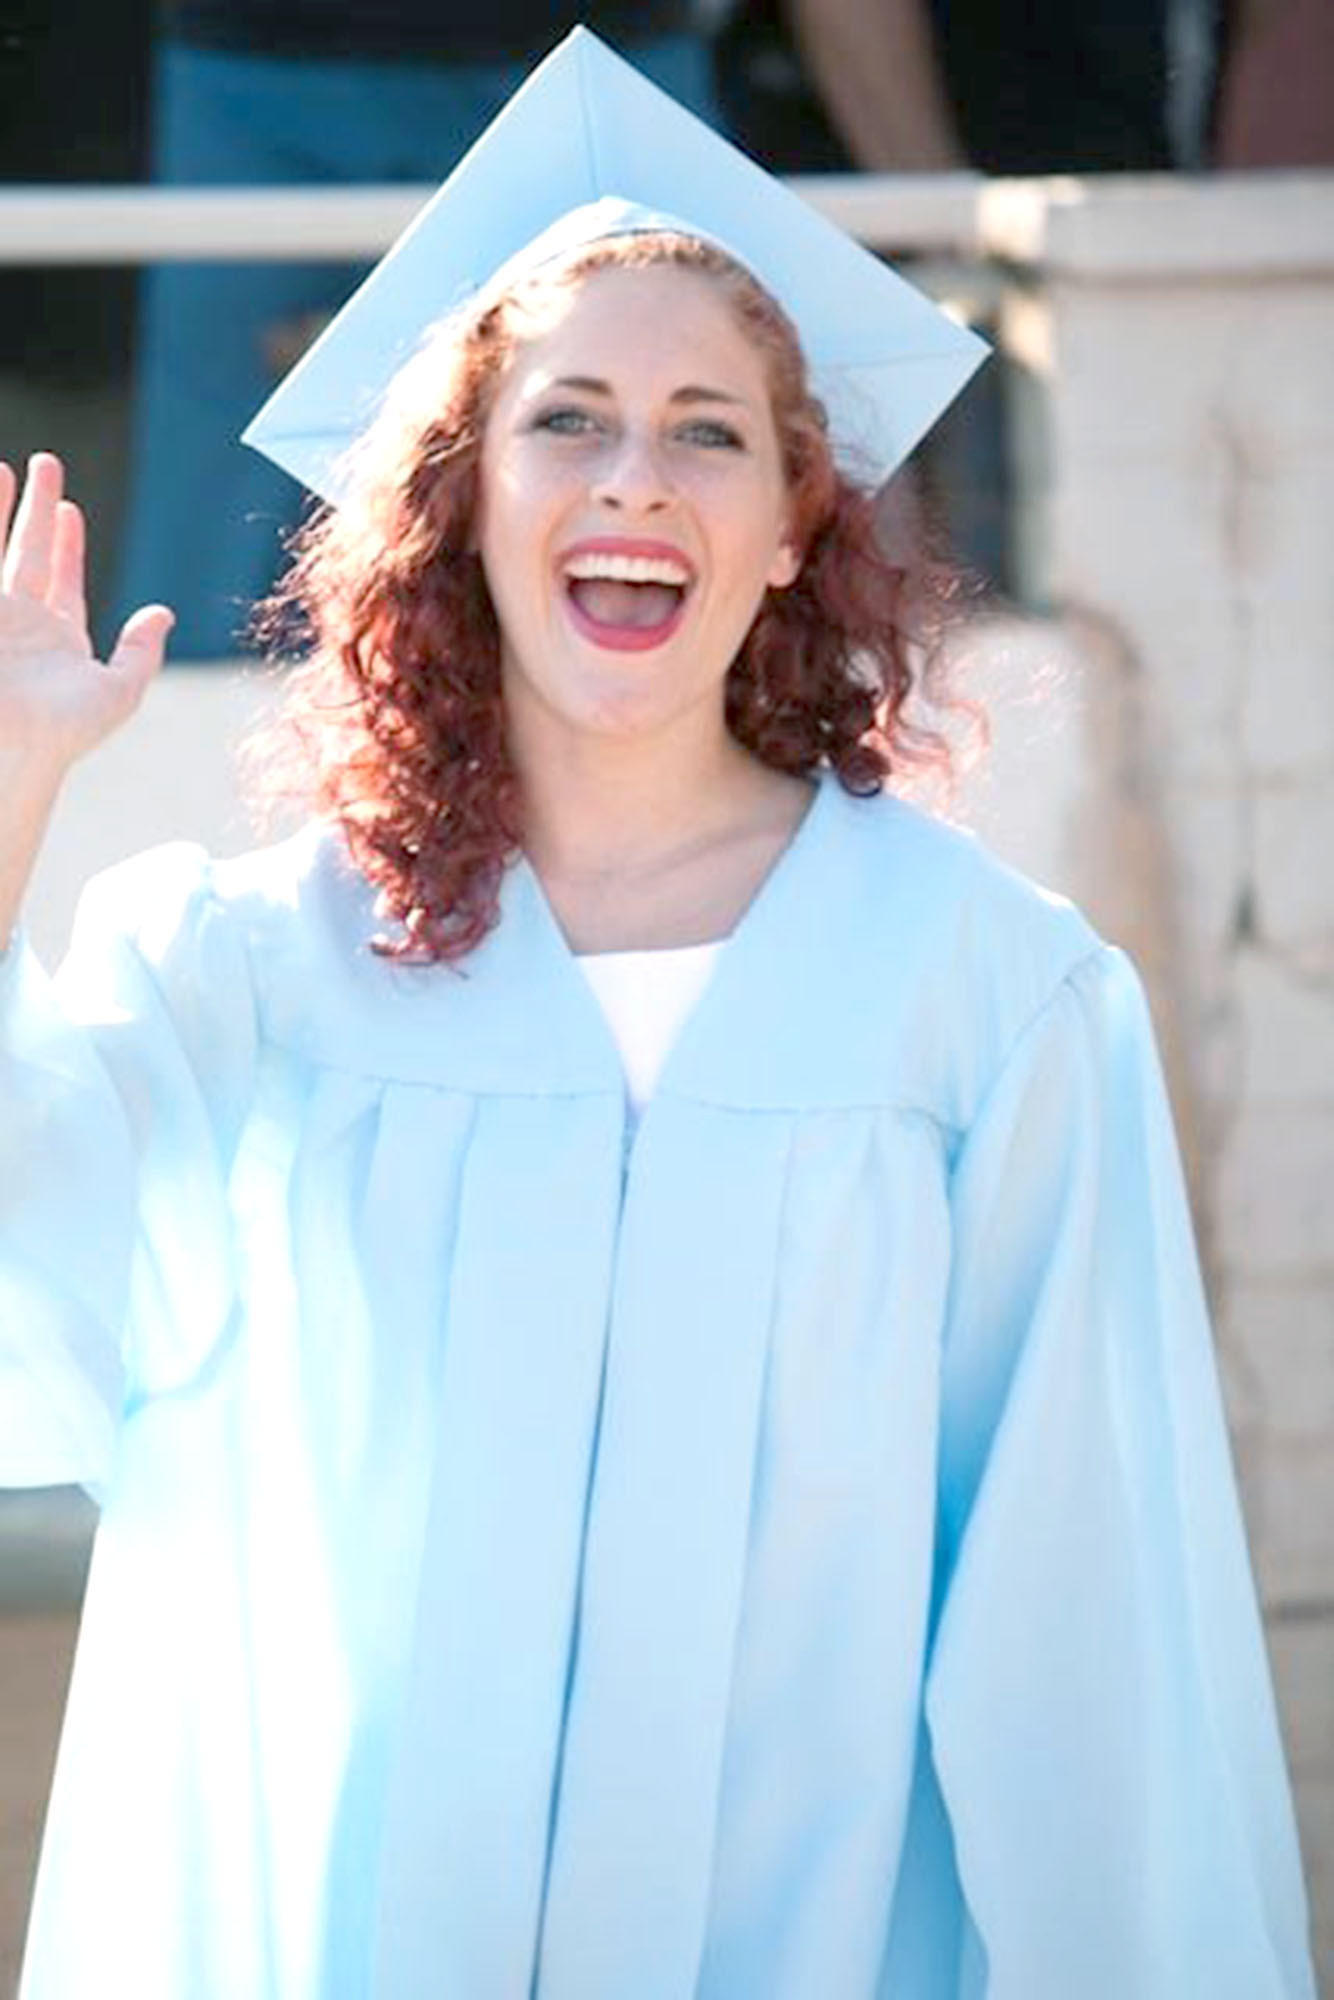 Elannah Rose Sheklow smiles at her high school graduation. Sheklow died of a heroine overdose, and her mother recently shared her daughter's story at the La Crescenta Library to try to convince local youth to stay away from drugs.